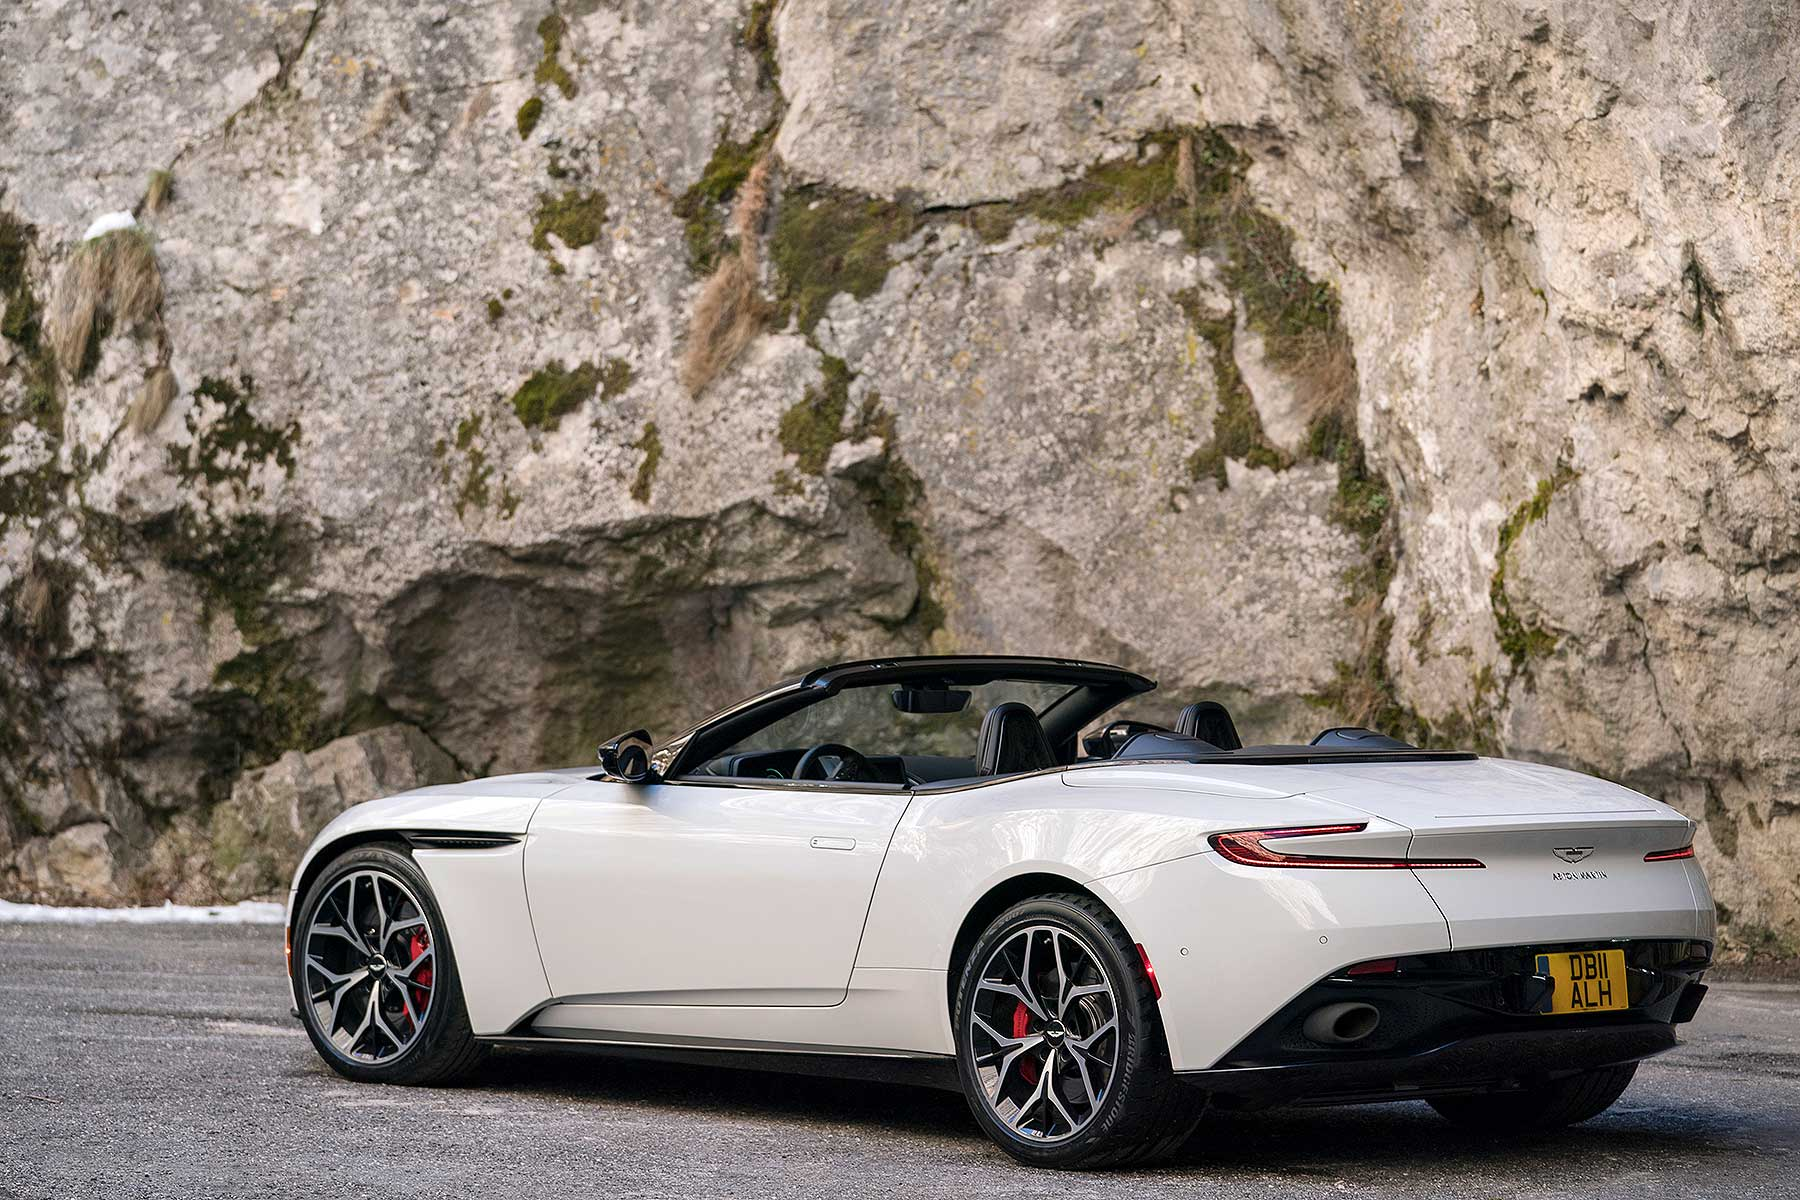 2018 aston martin db11 volante first drive review its no soft option motoring research. Black Bedroom Furniture Sets. Home Design Ideas